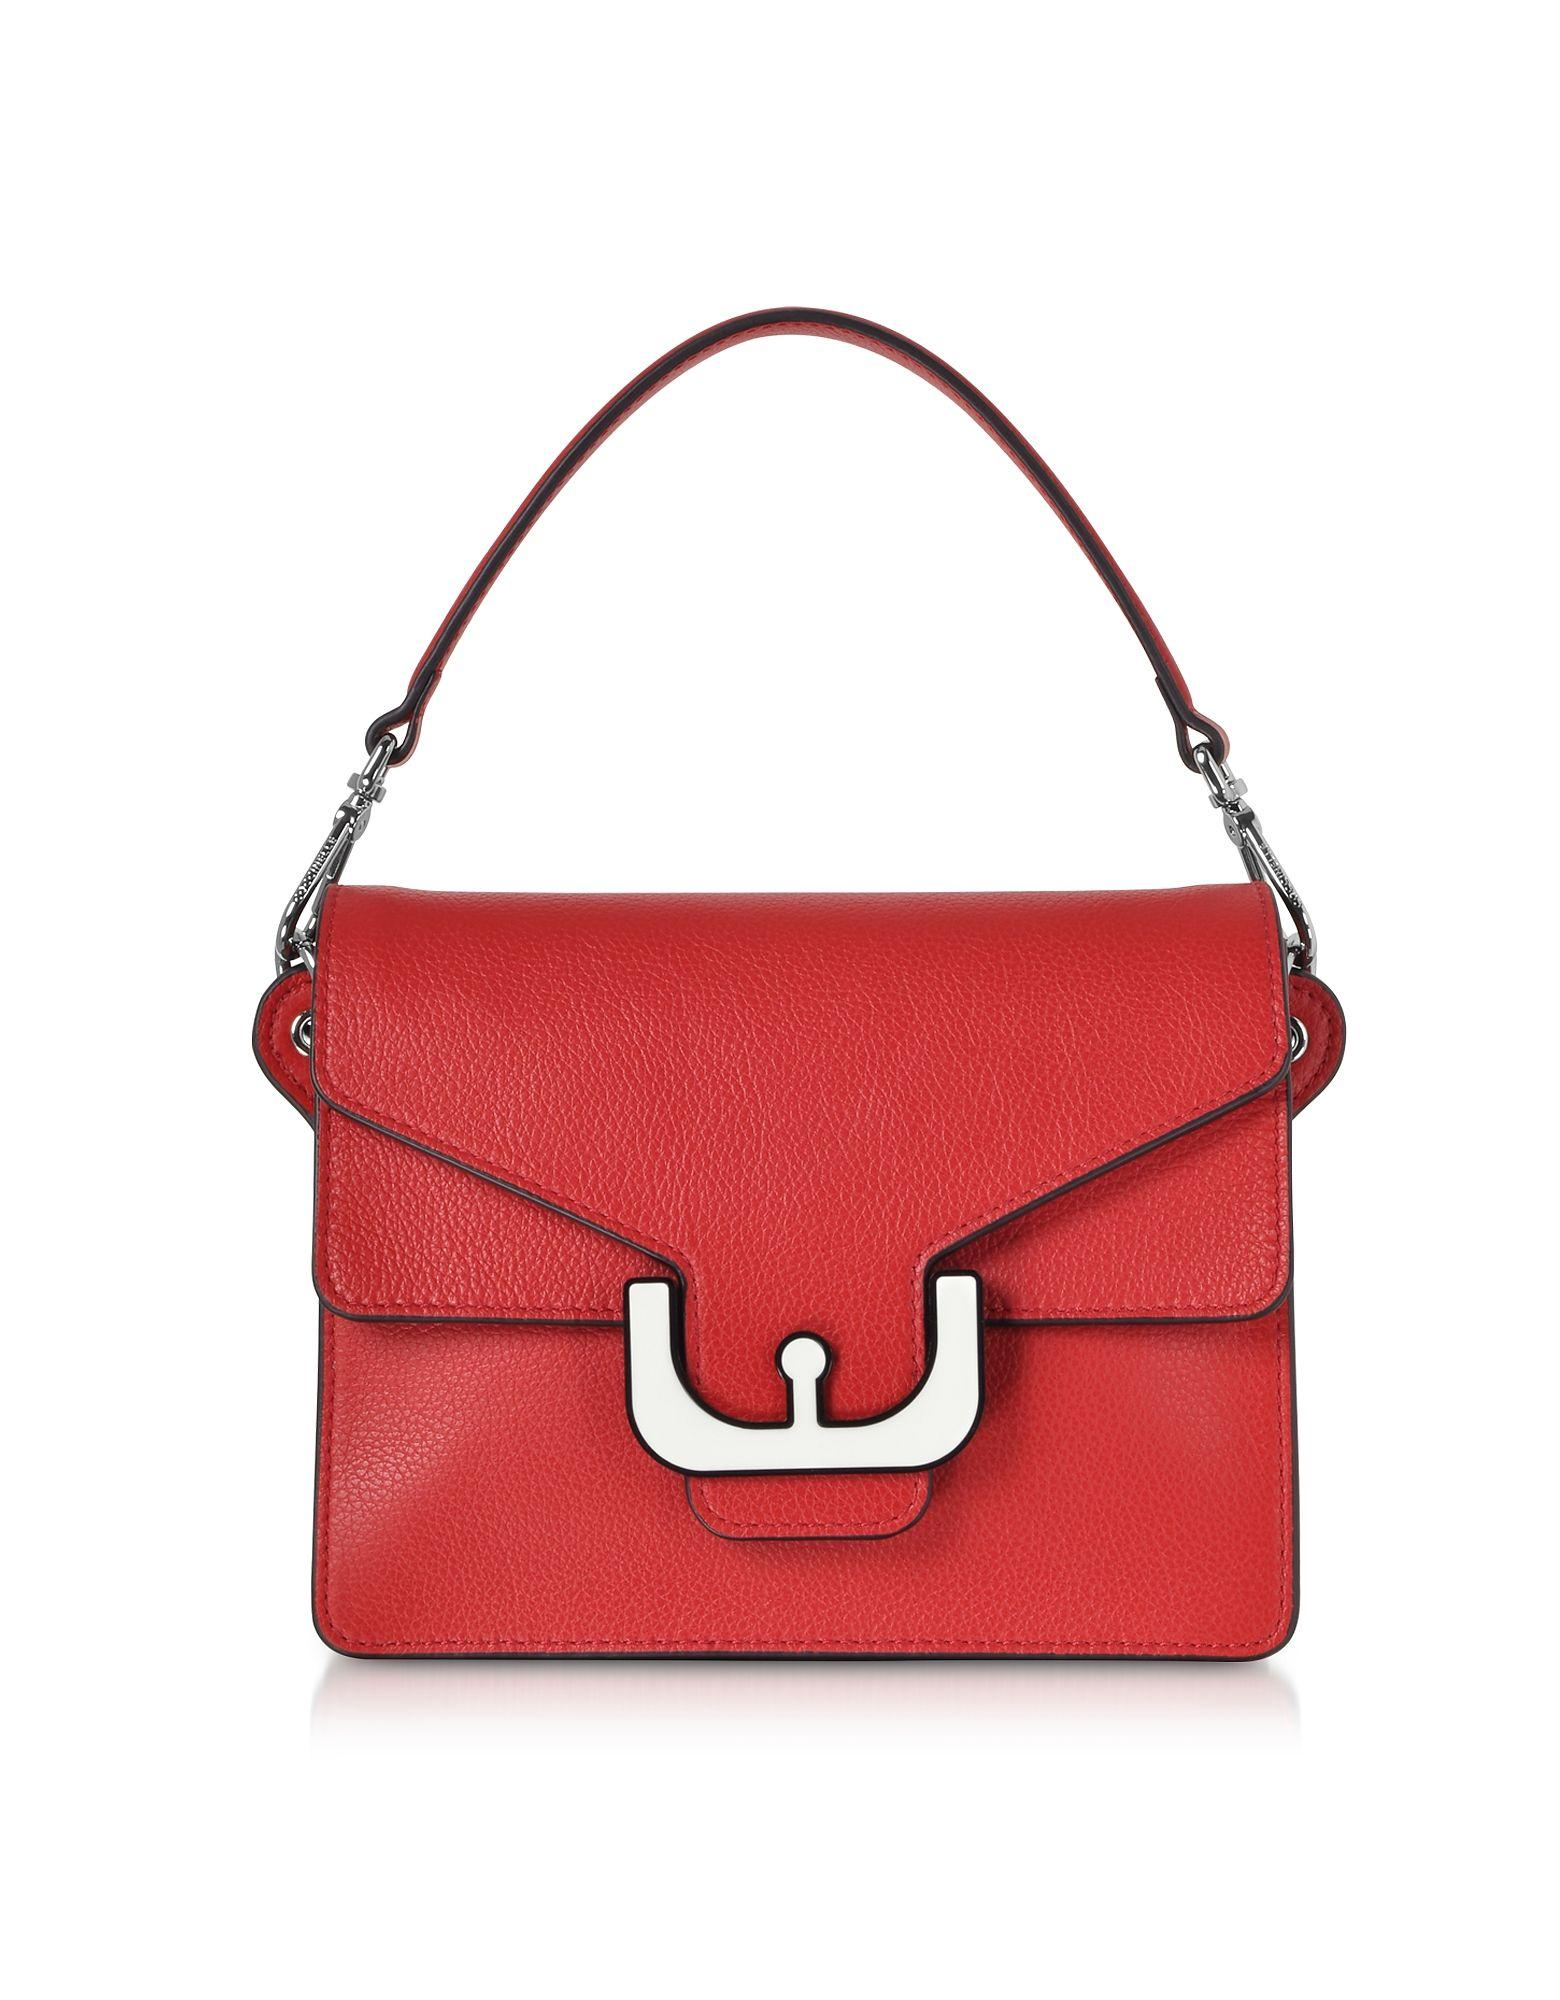 39e87141def268 Coccinelle Red Leather Handbag in Red - Lyst